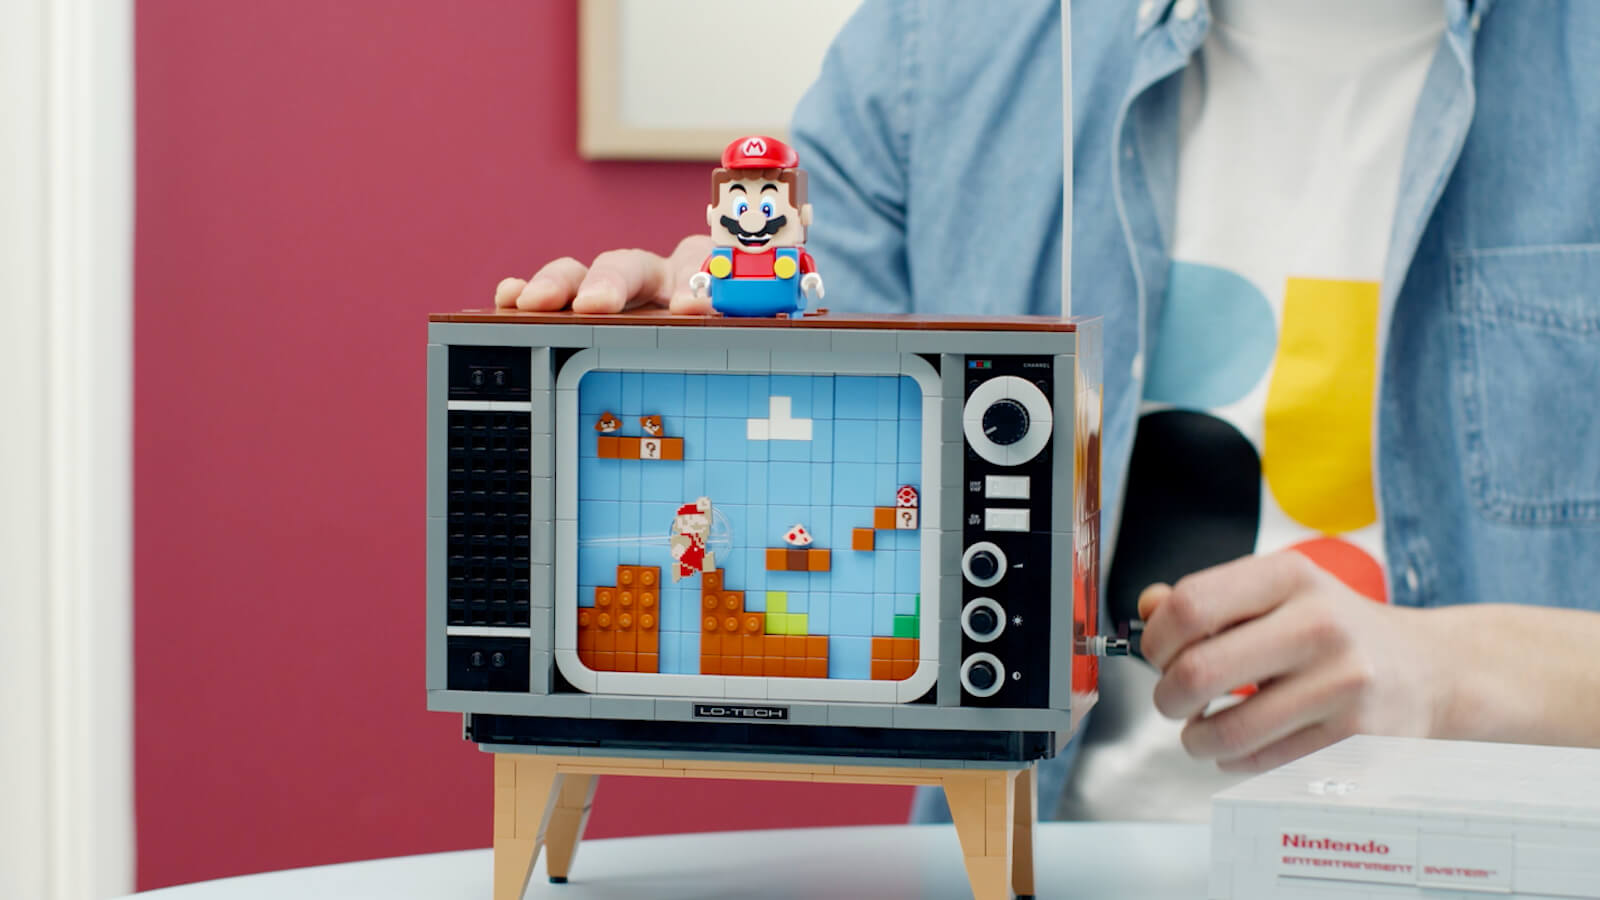 LEGO Nintendo Entertainment System Retro Mario Game lets you recreate the original version